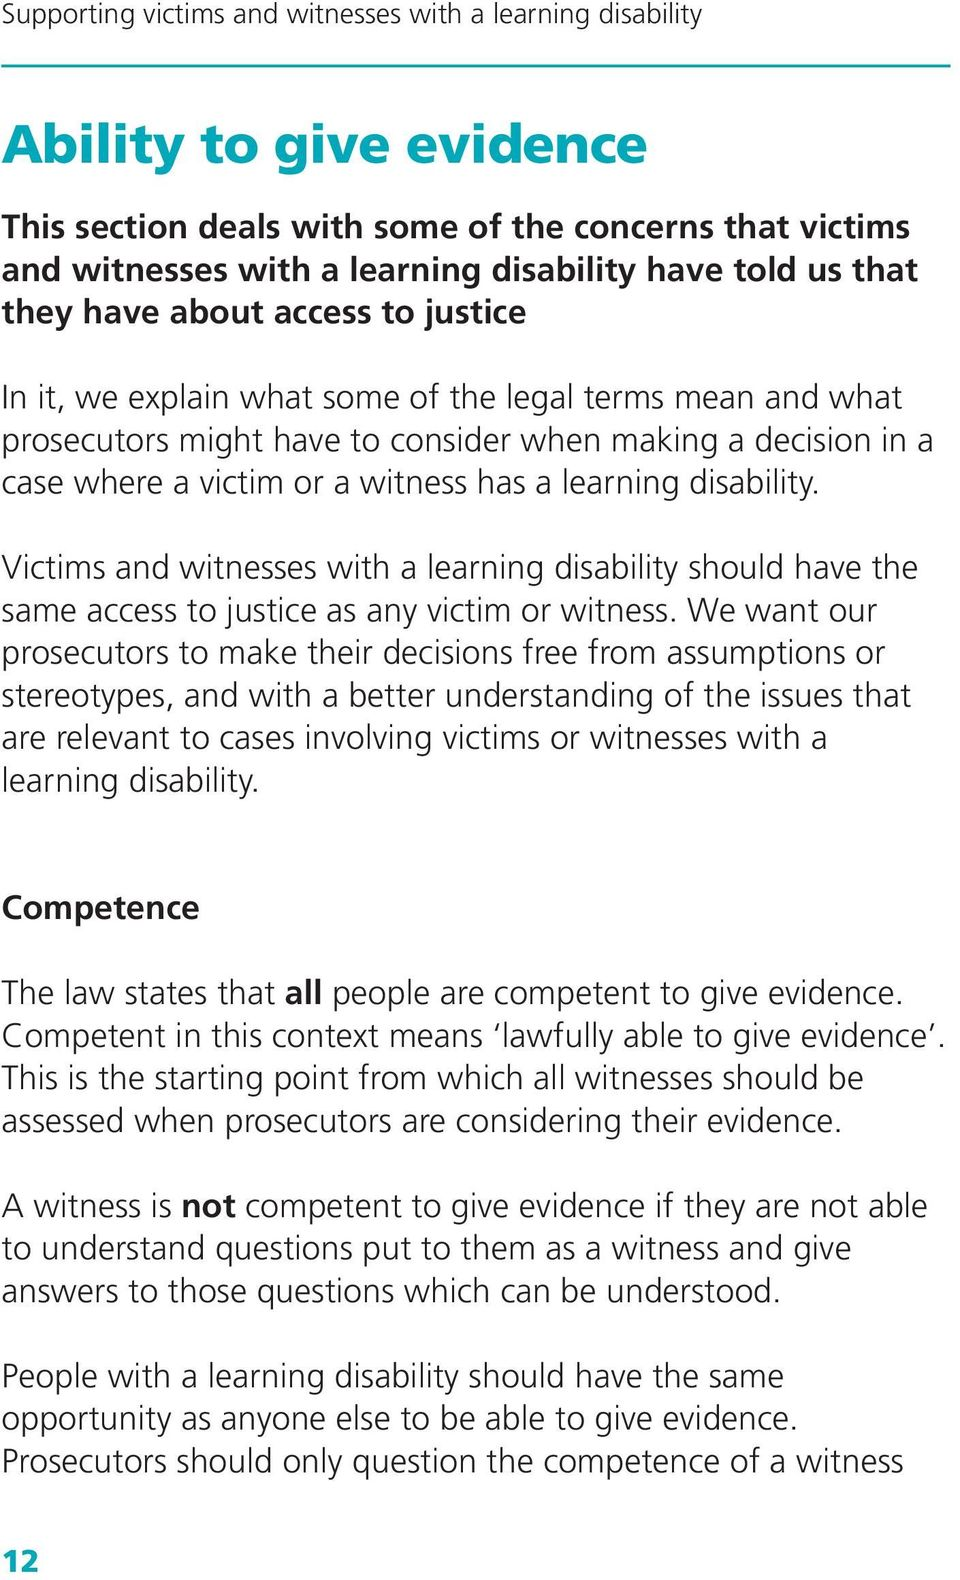 Victims and witnesses with a learning disability should have the same access to justice as any victim or witness.